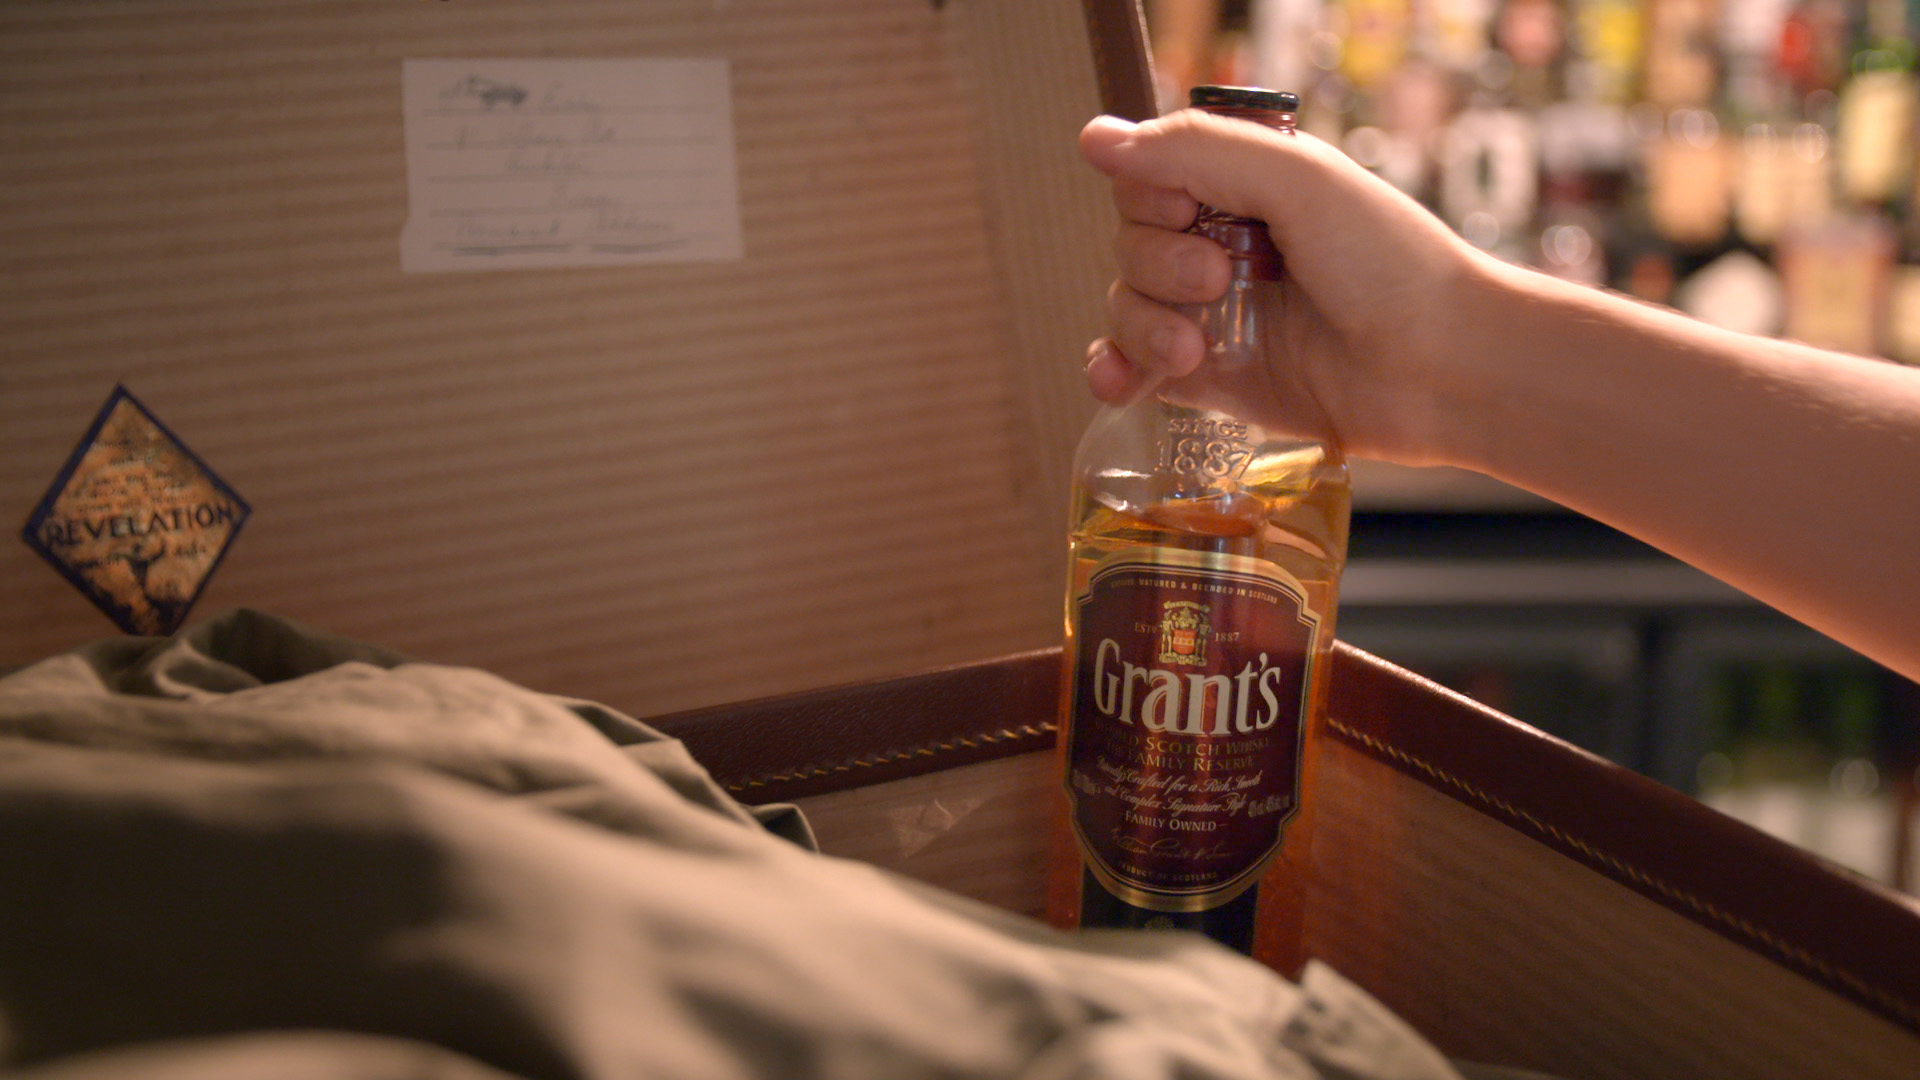 Travel the world with a suitcase full of whisky as a brand ambassador for Grant's.